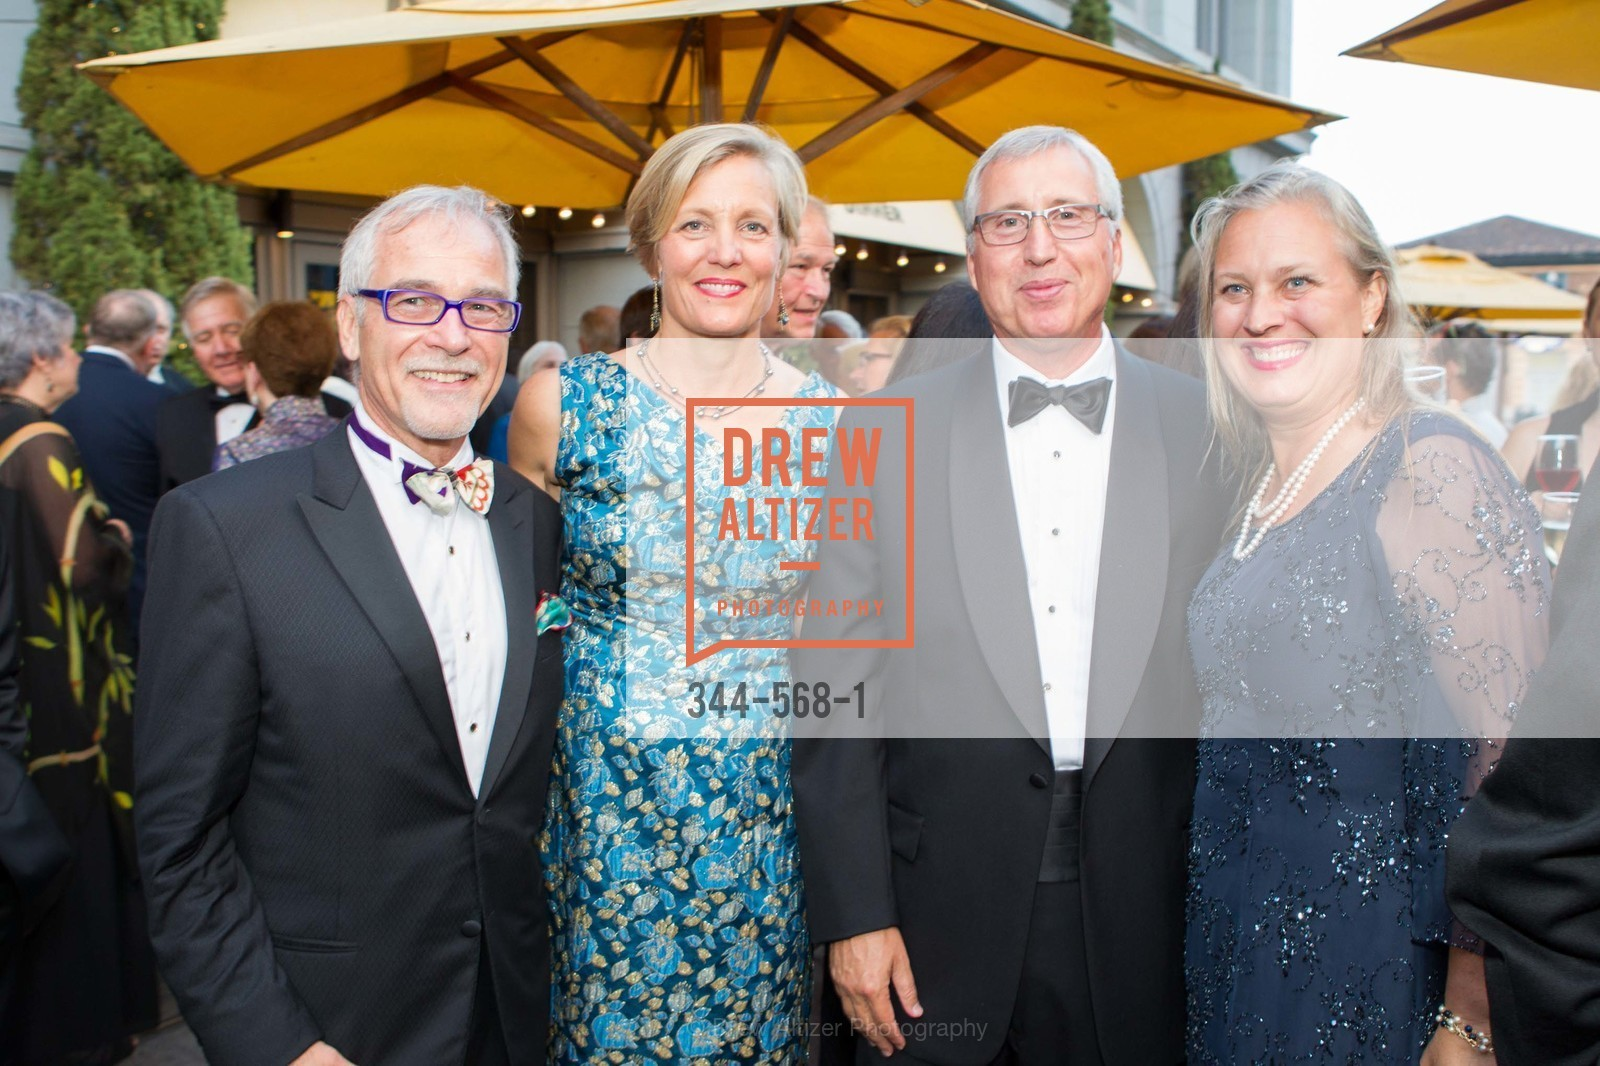 Tim Kochis, Roxanne Richards, Ted Eliot, Cybil Kauffman, SOTHEBY'S  Hosts a Private Viewing of Highlights from the Collection of MRS. PAUL MELLON, US, September 17th, 2014,Drew Altizer, Drew Altizer Photography, full-service agency, private events, San Francisco photographer, photographer california